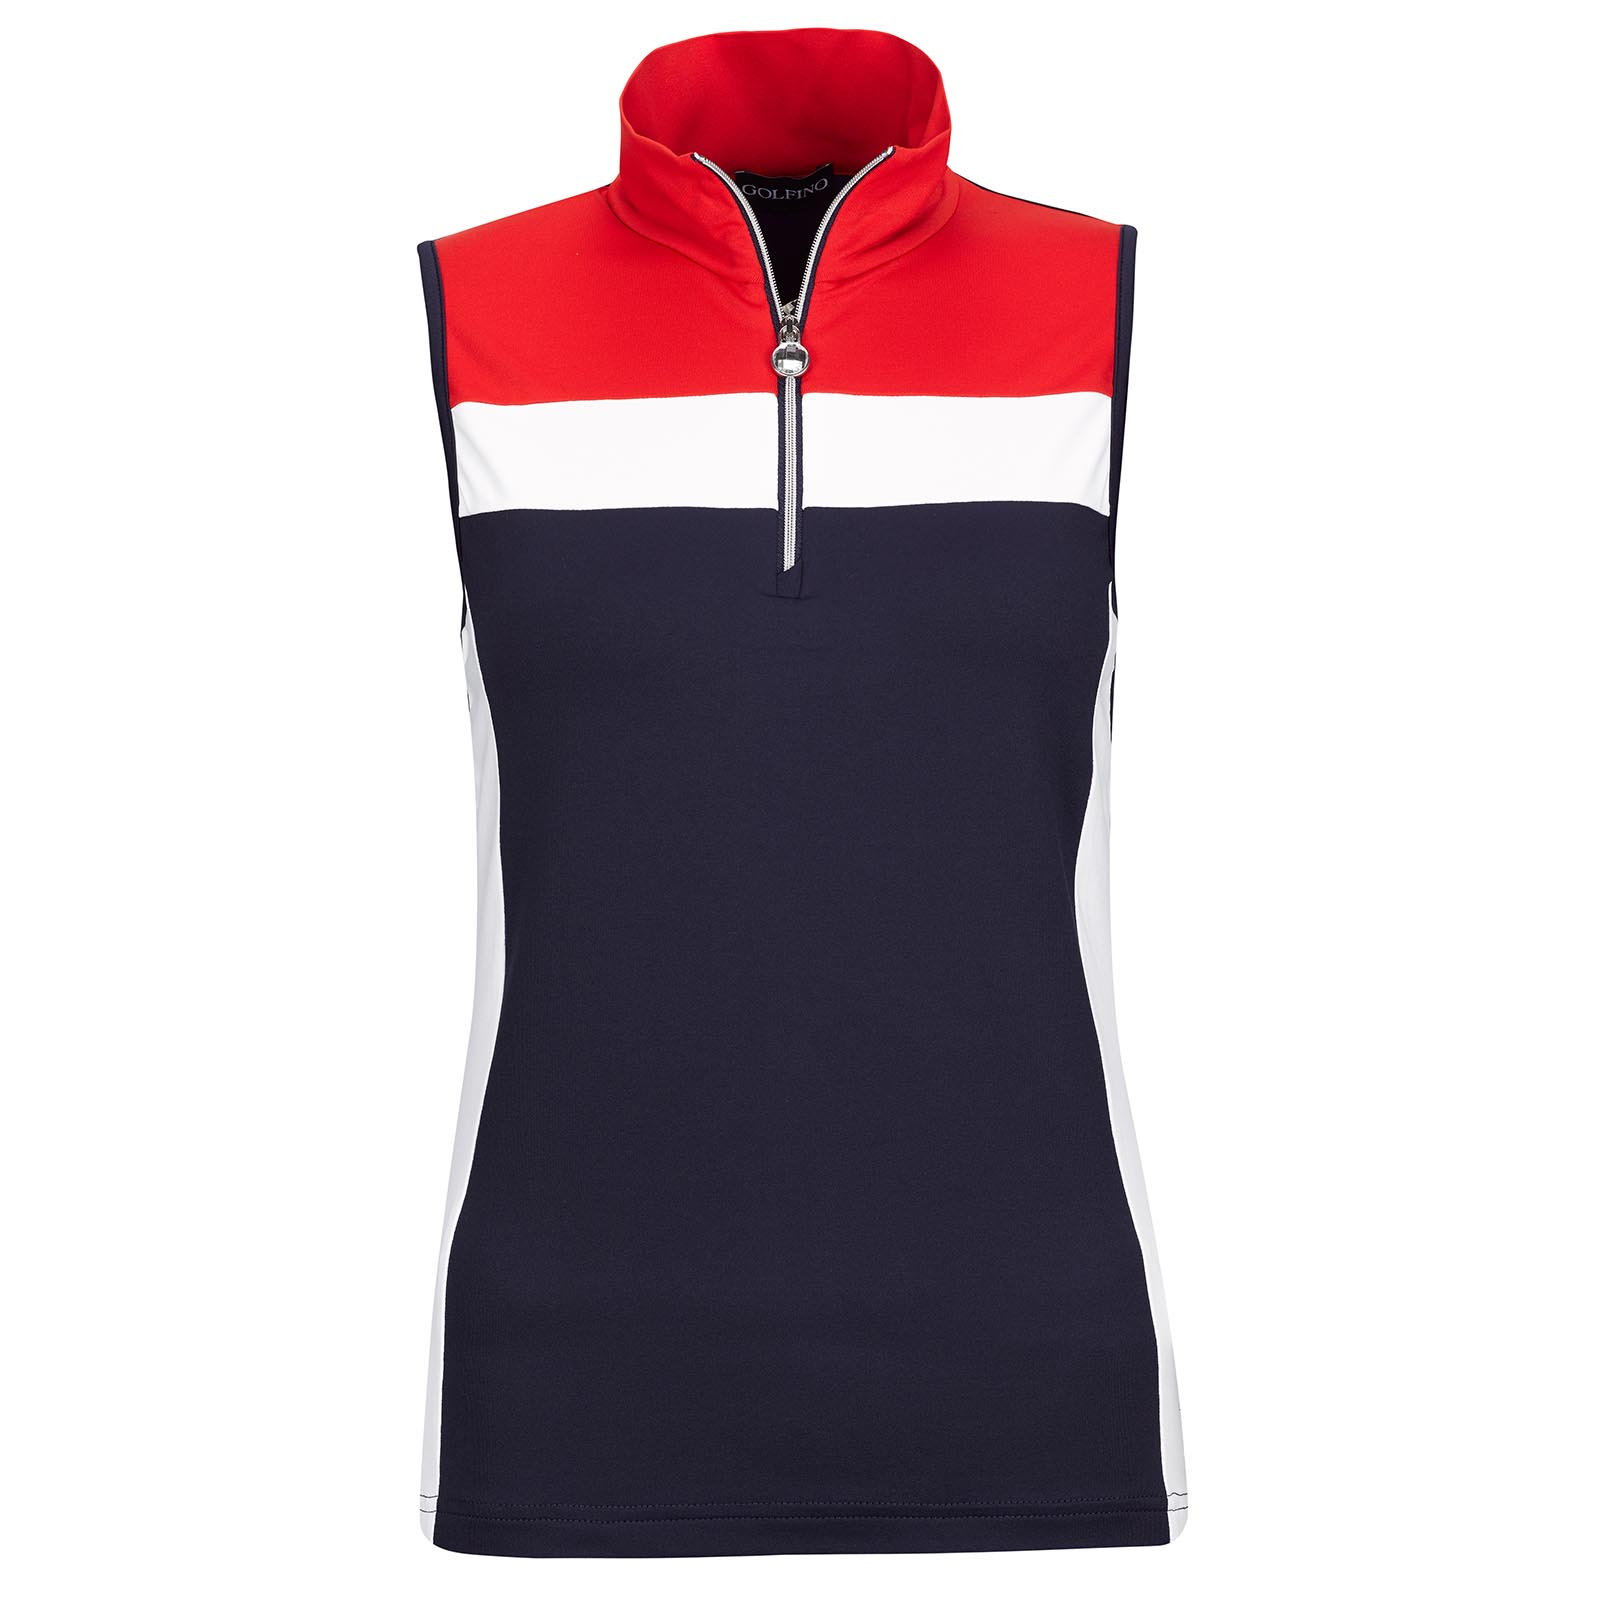 Ladies' sleeveless Lycra Performance functional golf troyer in Pro-Look